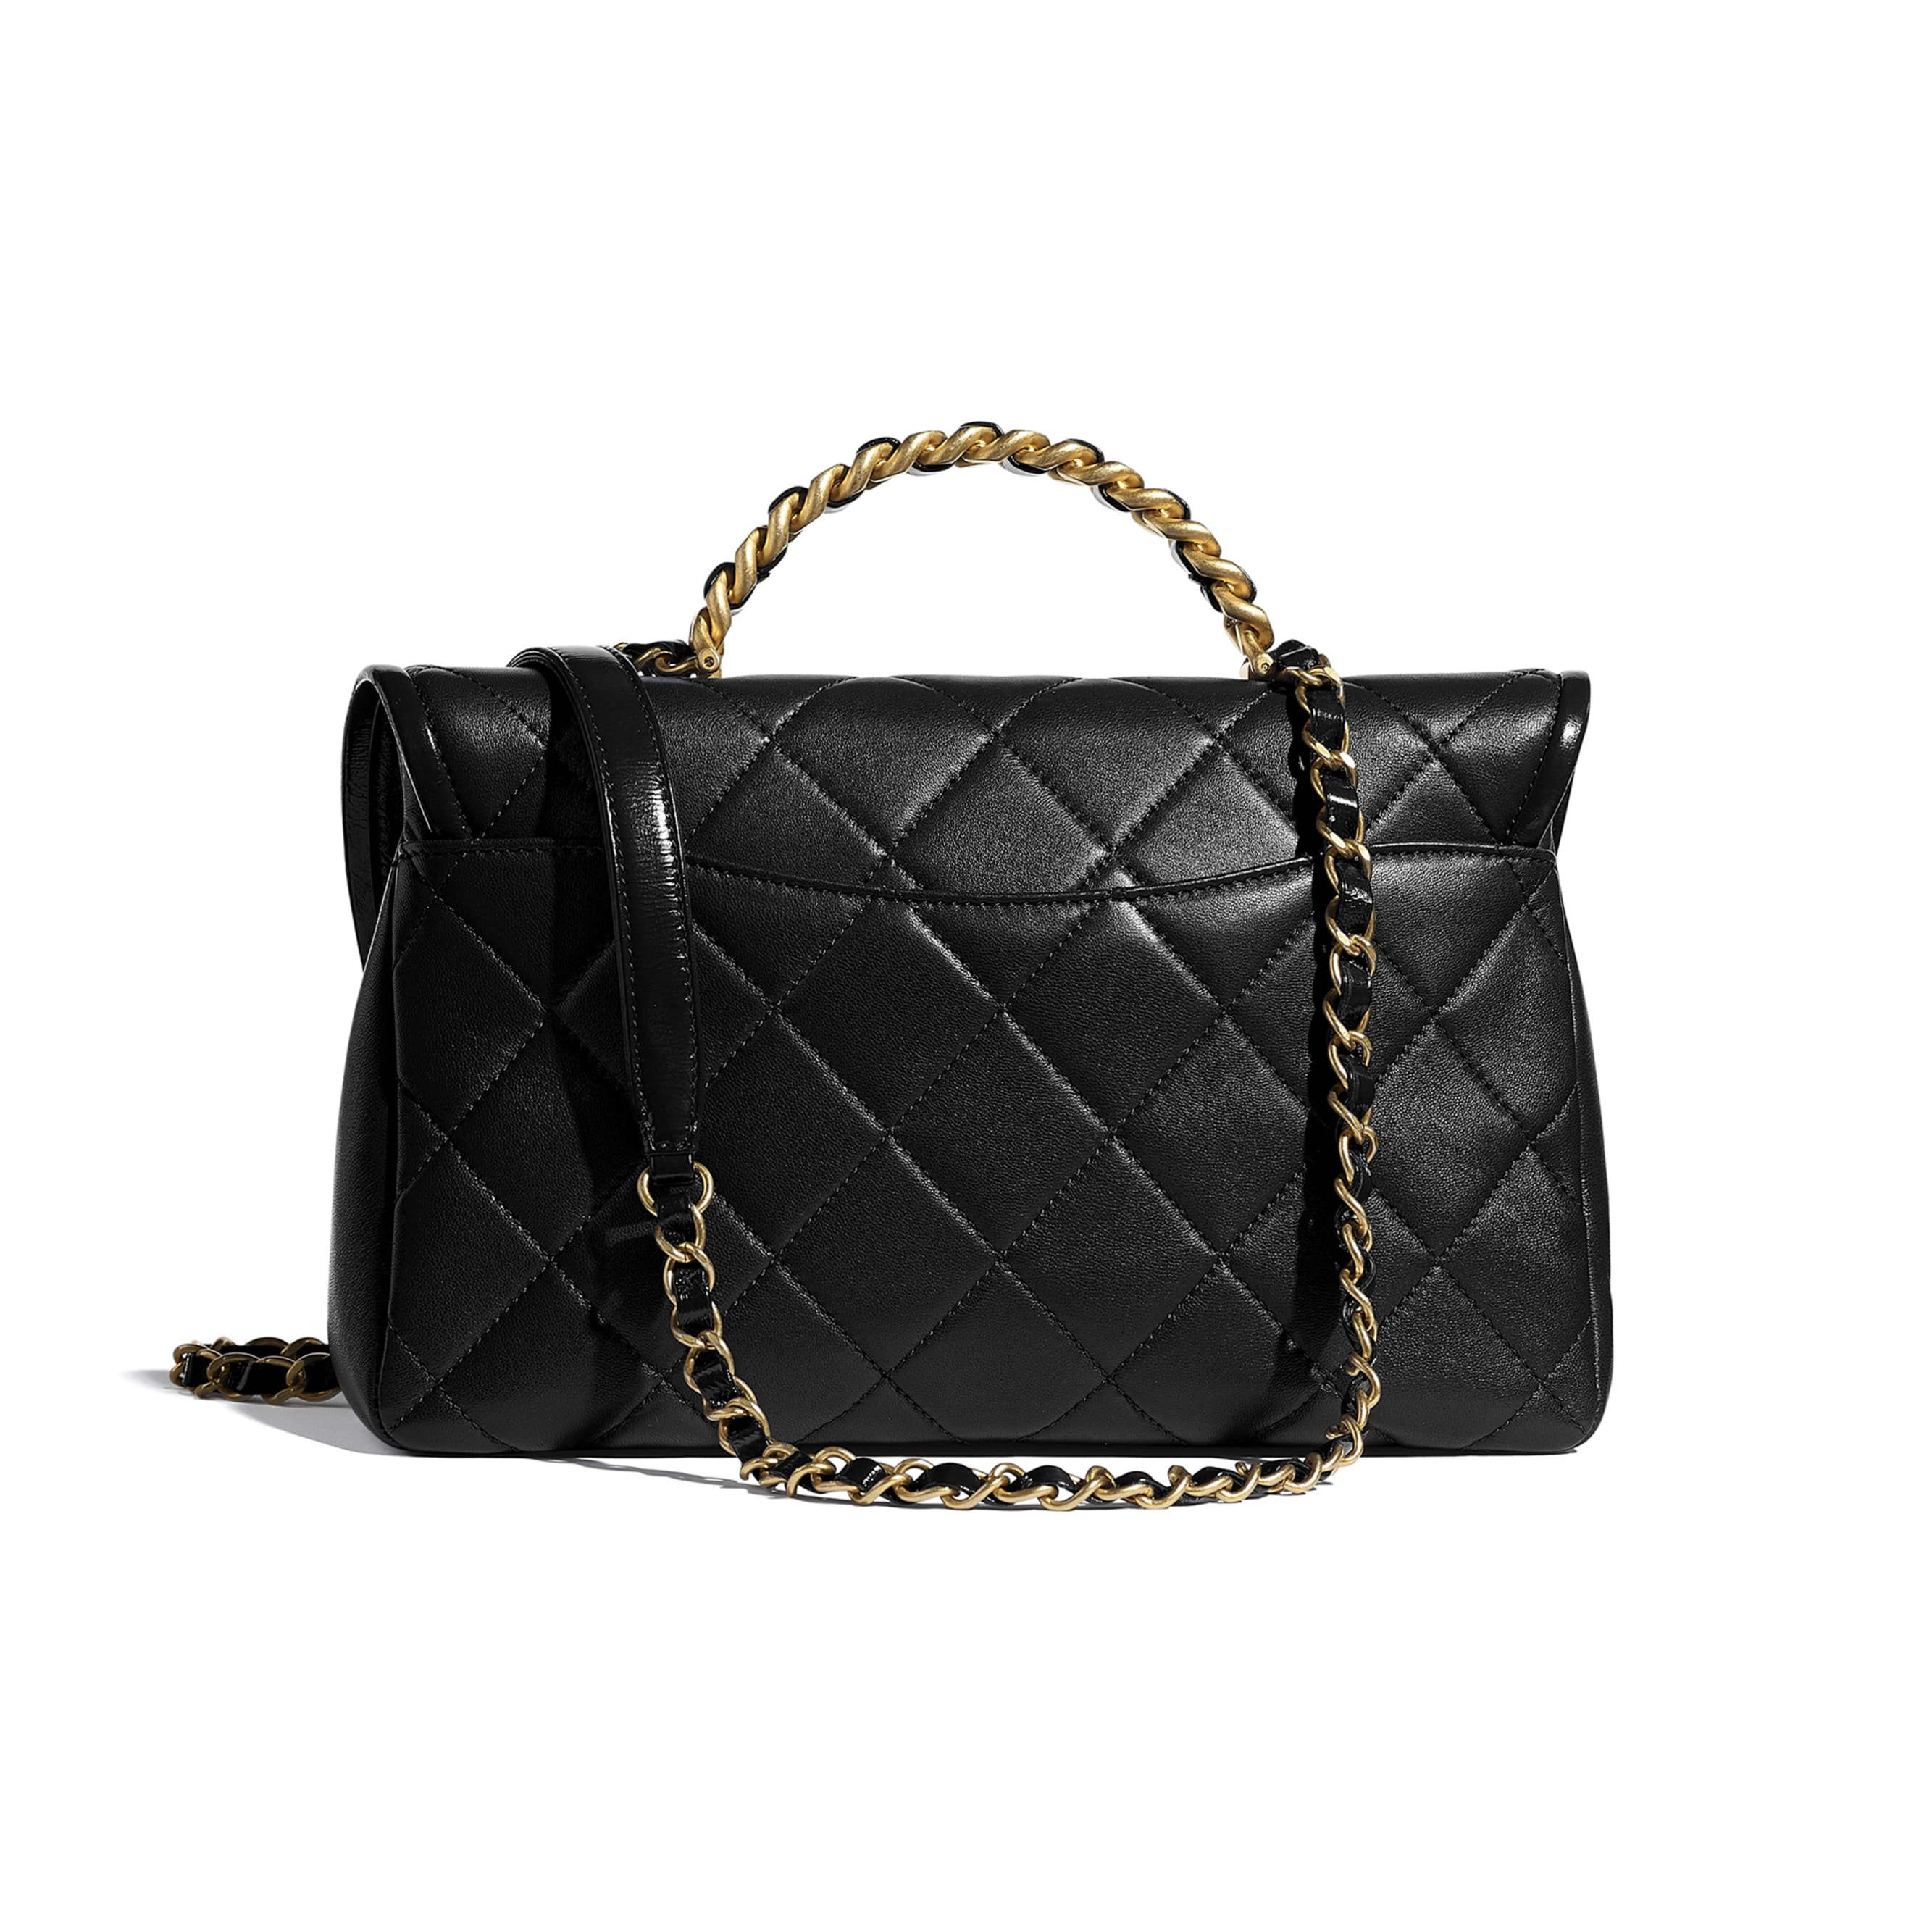 Large Flap Bag With Top Handle - Black - Lambskin, Shiny Crumpled Calfskin & Gold-Tone Metal - CHANEL - Alternative view - see standard sized version